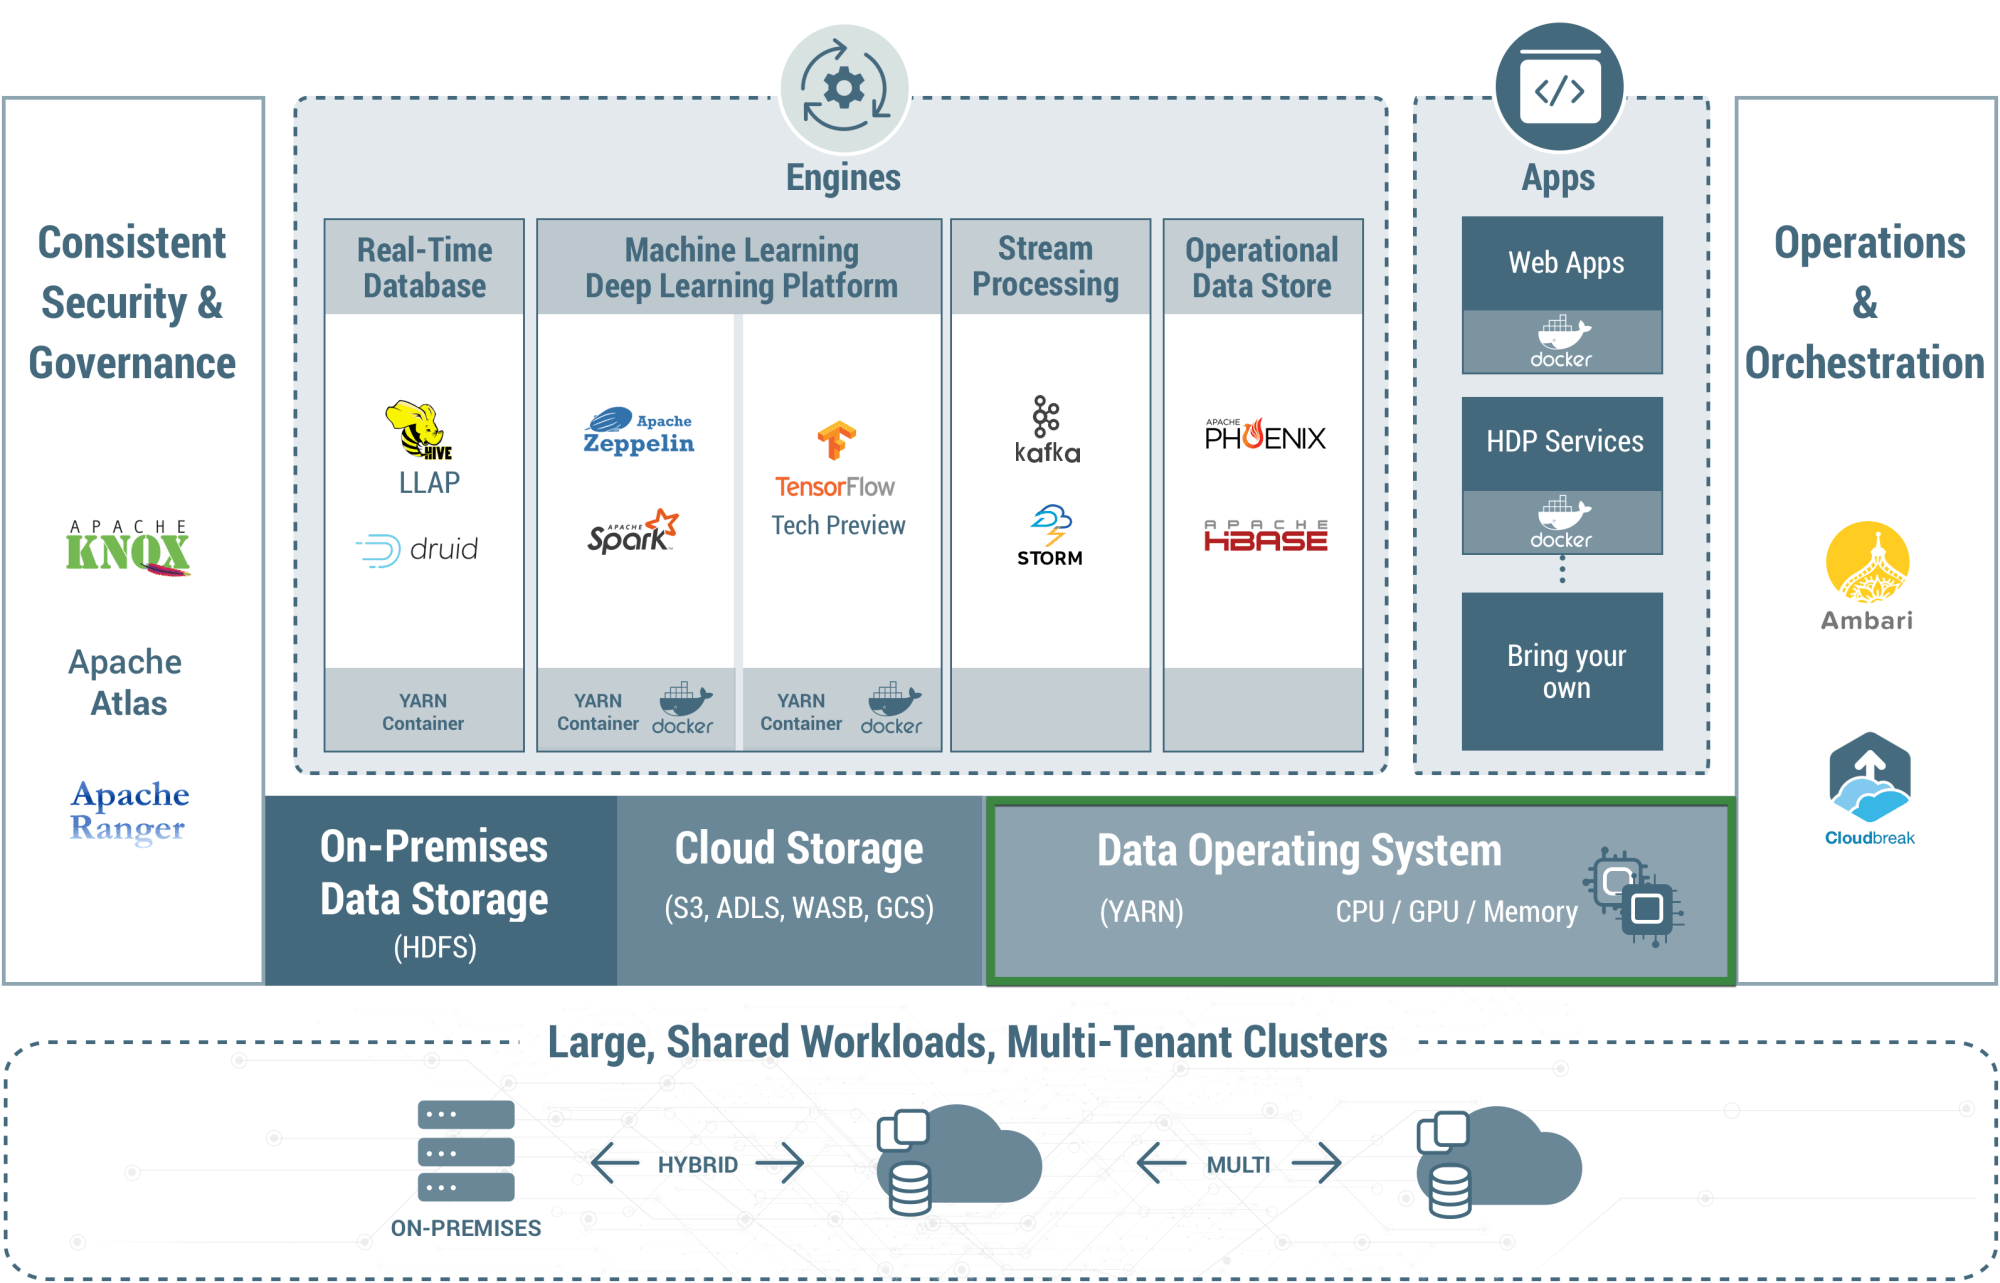 hight resolution of yarn extends the power of hadoop to new technologies found within the data center so that you can take advantage of cost effective linear scale storage and